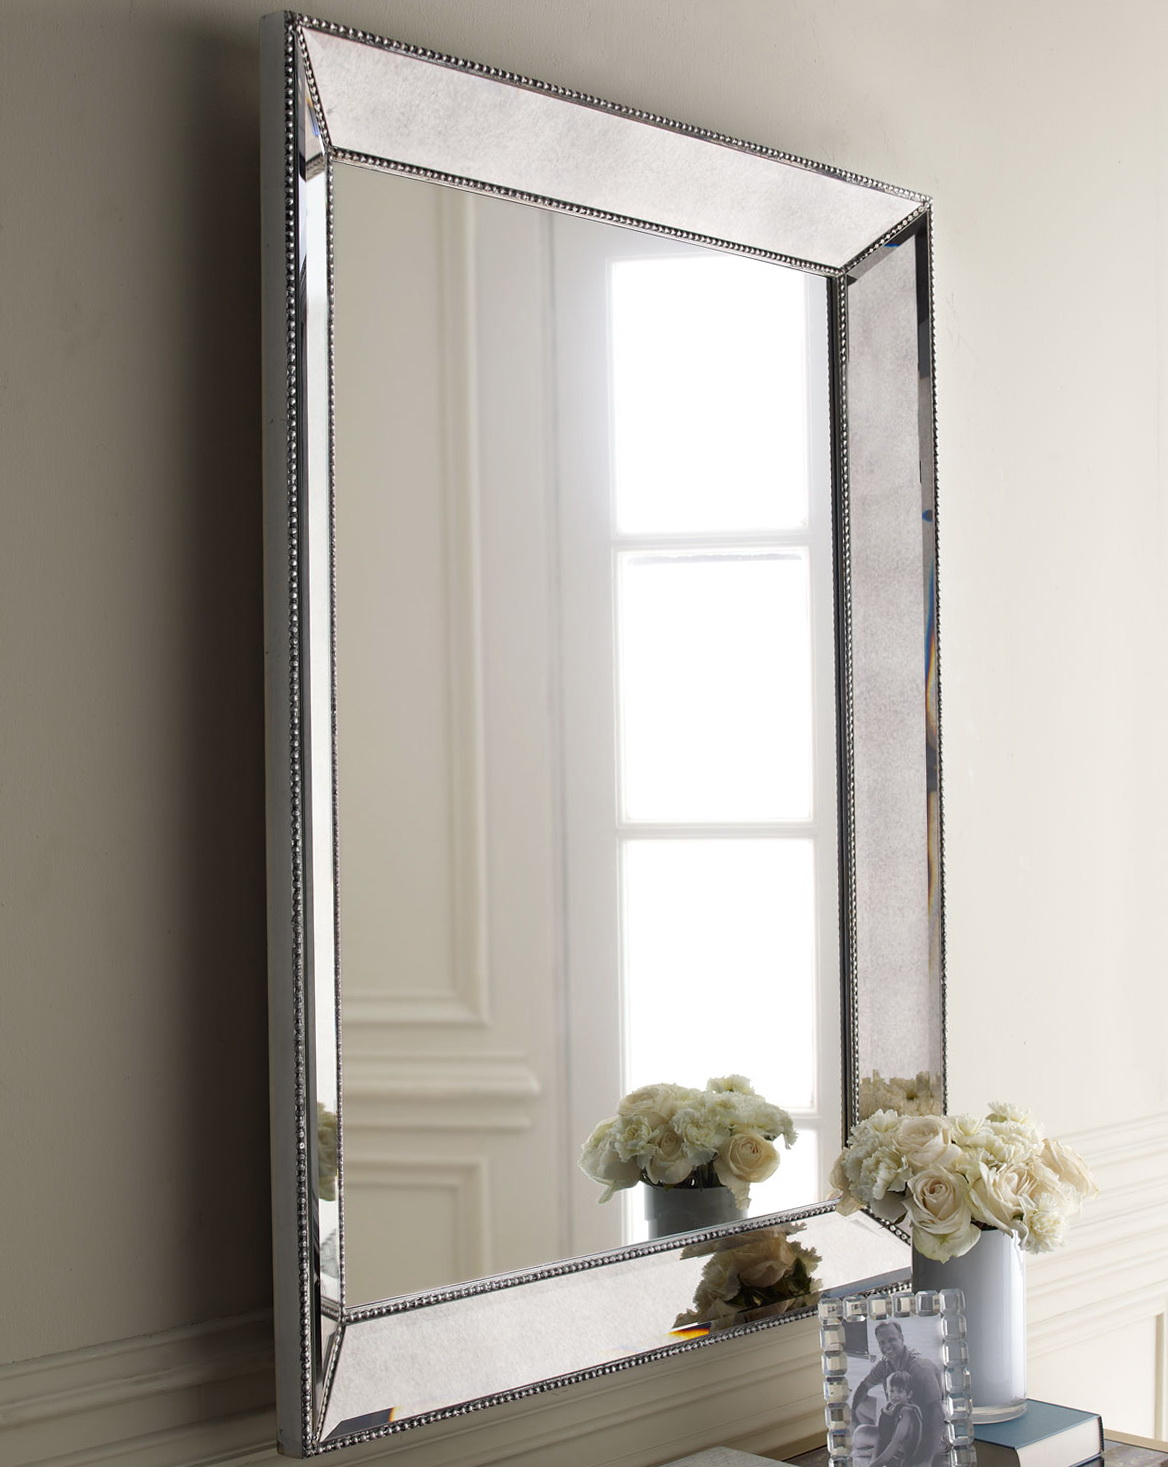 Silver framed mirror bathroom home design ideas for How to frame mirror in bathroom